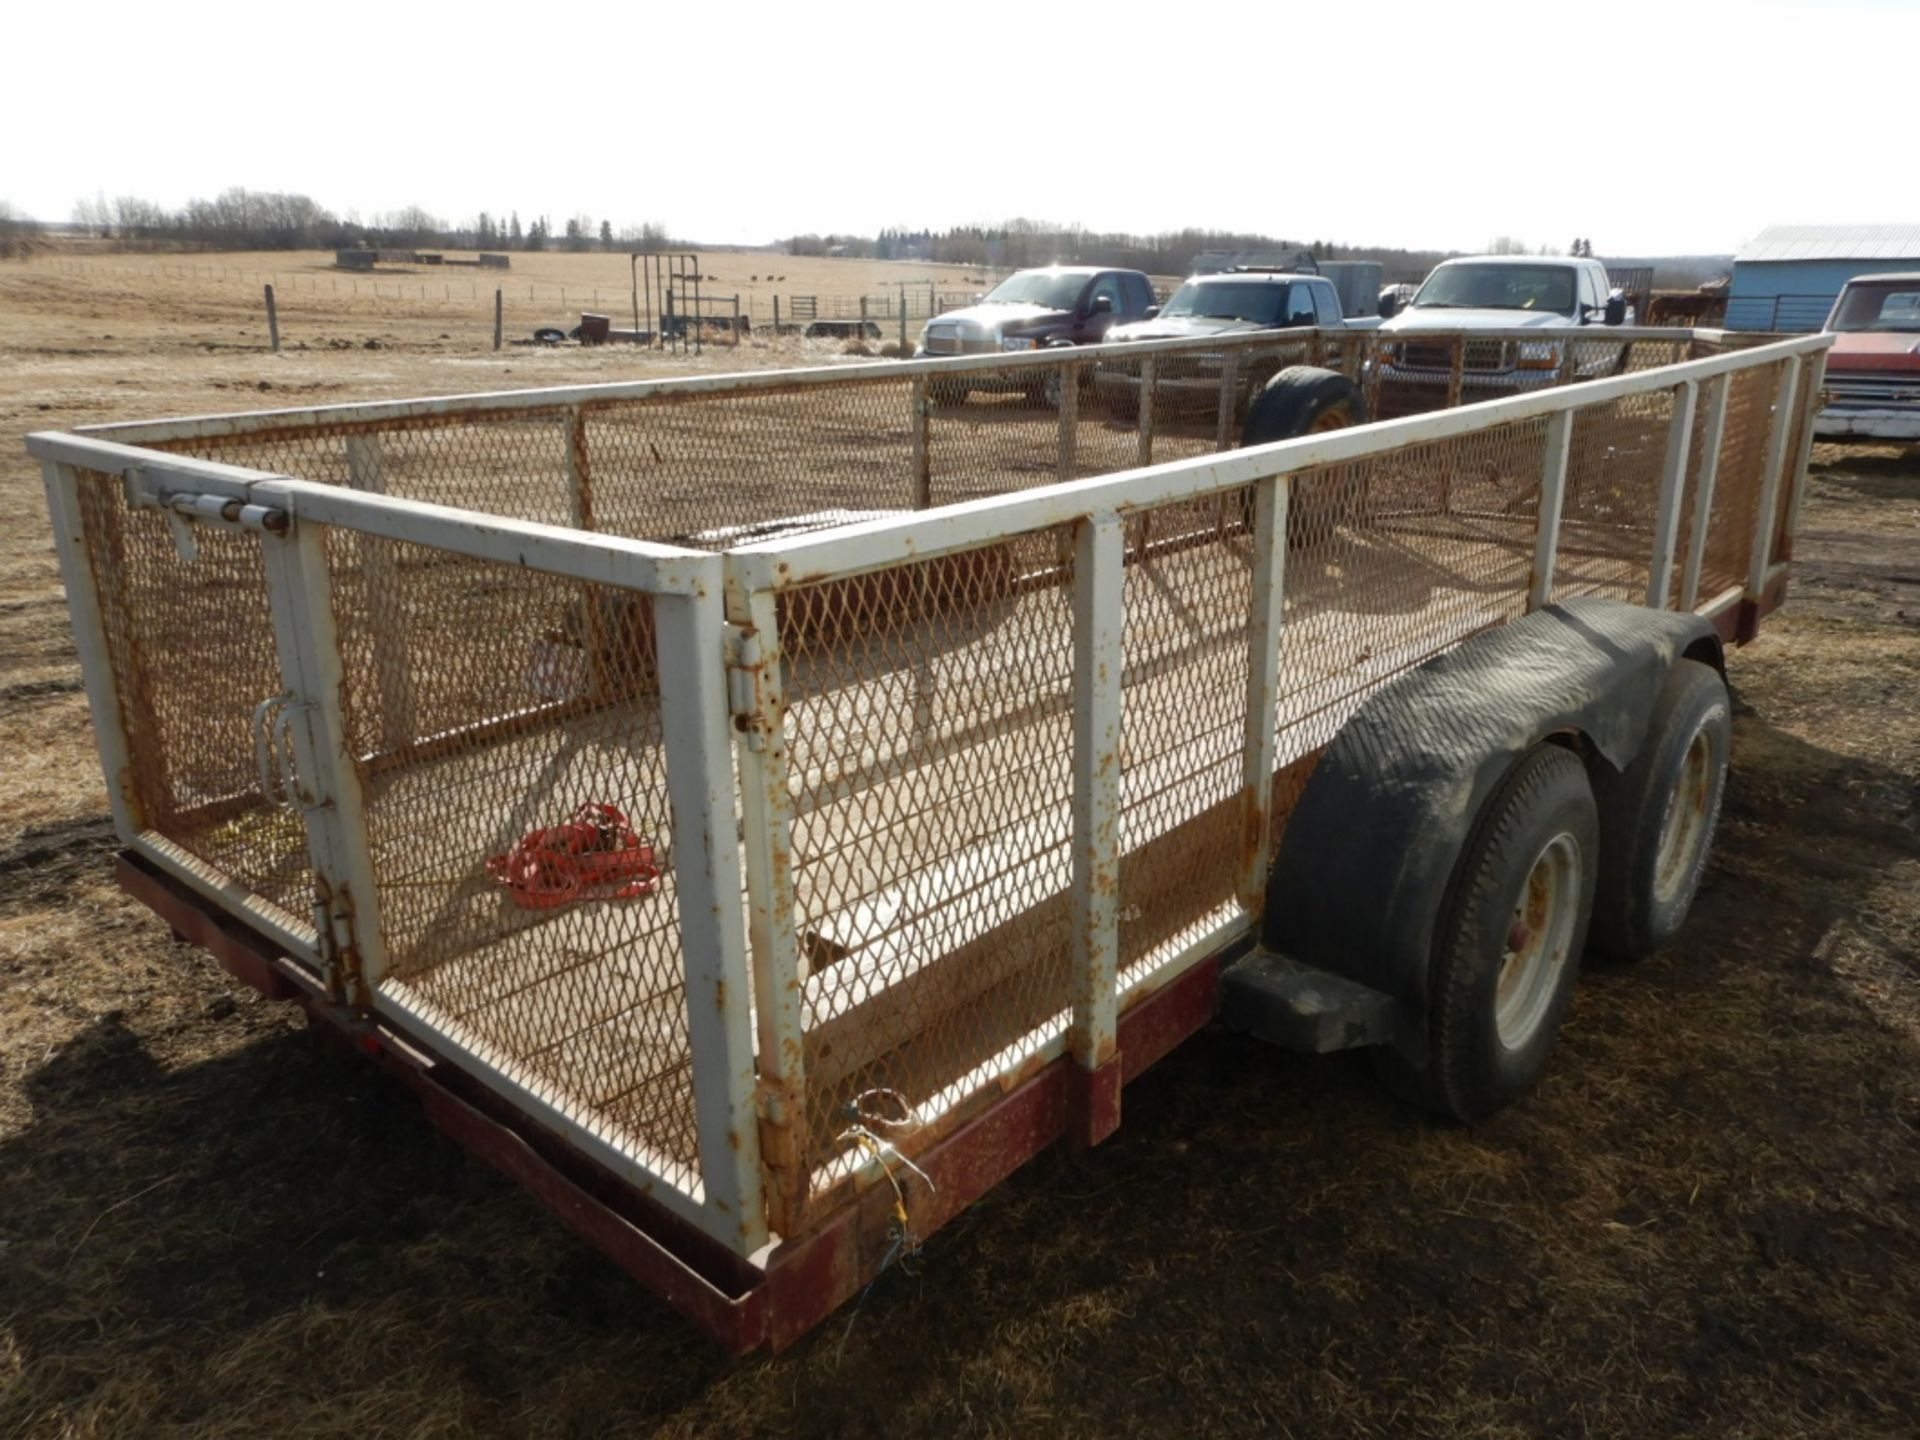 16 FT T/A CAR/EQUIPMENT TRAILER W/REMOVABLE MESH STEEL RACKS NO VIN, NO YEAR, NO MAKE & MODEL - Image 3 of 6